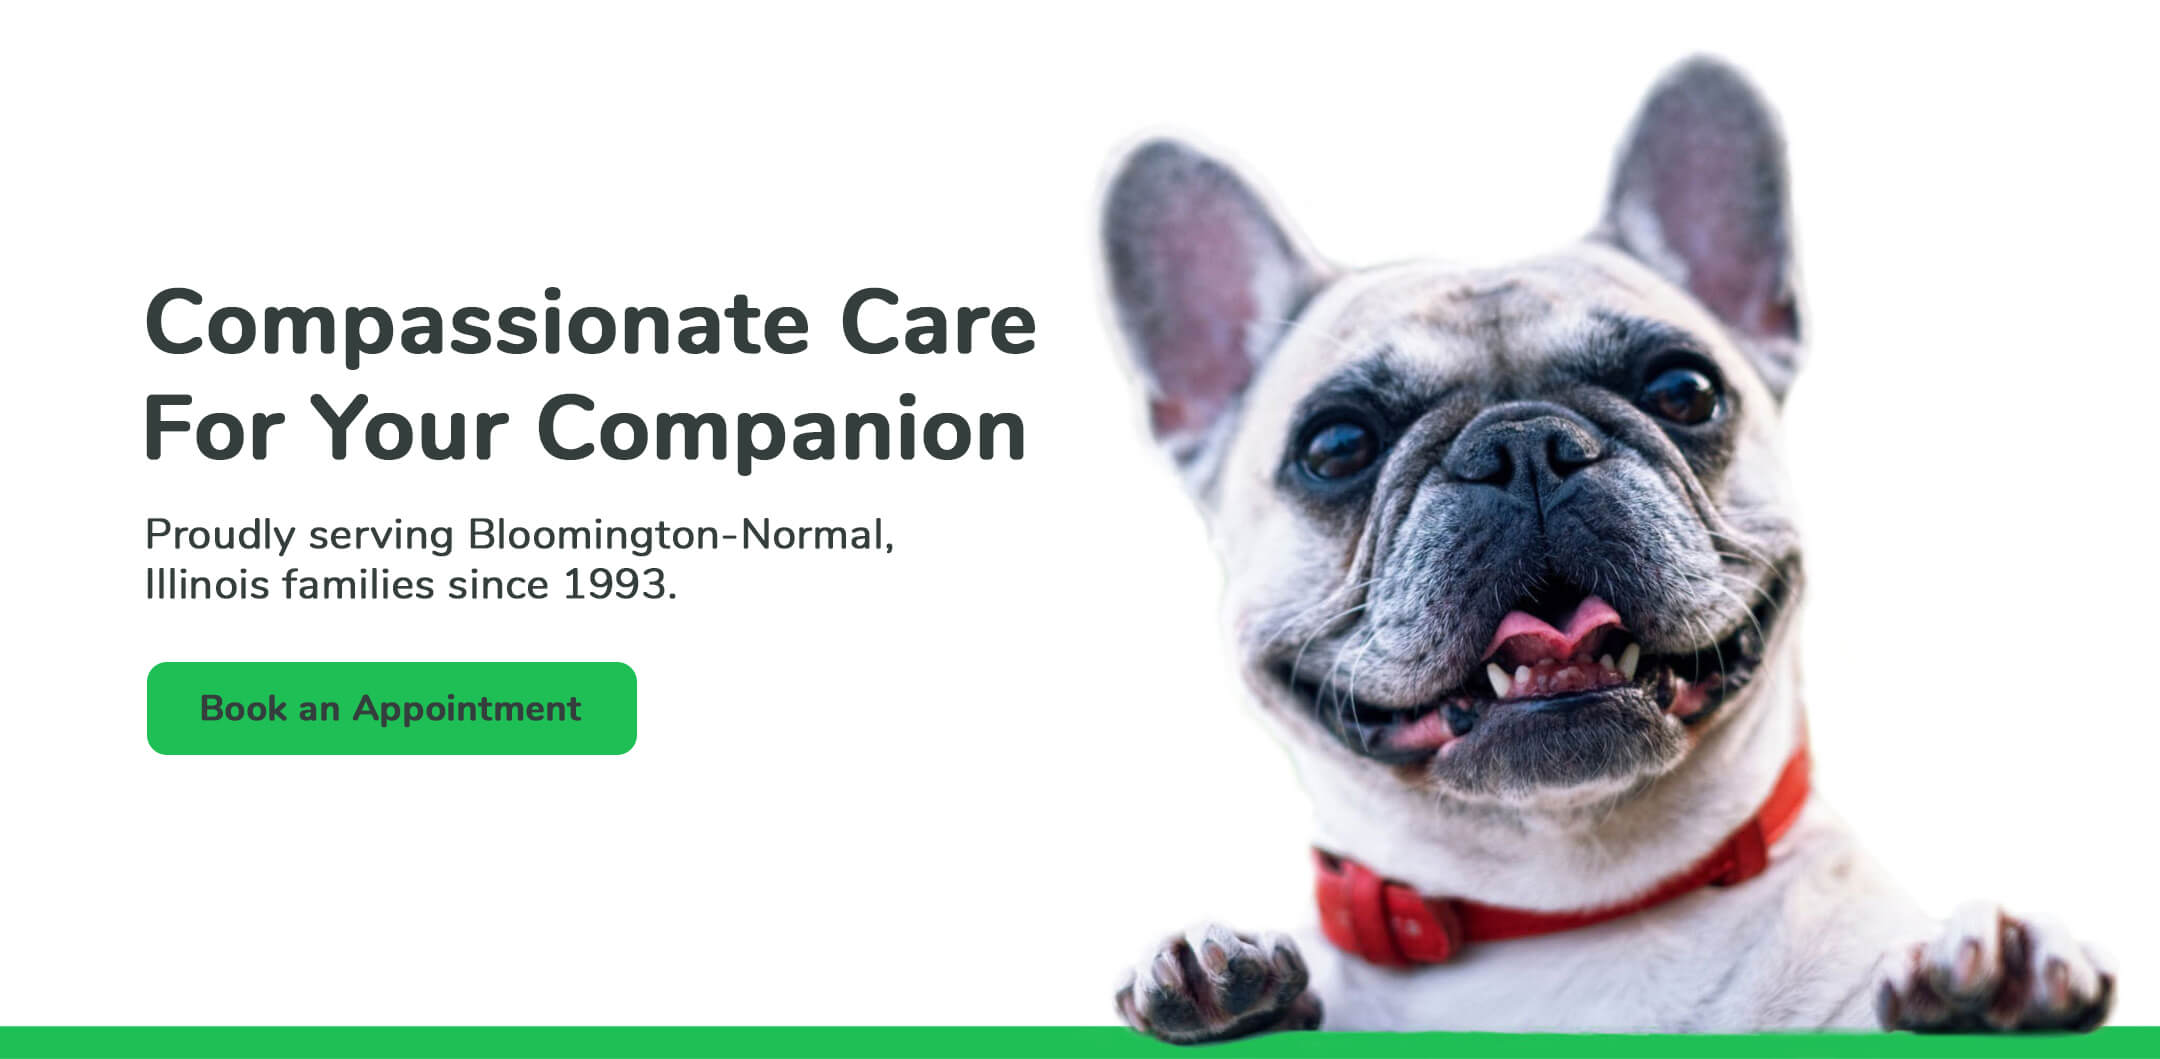 Compassionate Care For Your Companion. Proudly serving Bloomington-Normal, Illinois families since 1993. Book an appointment.